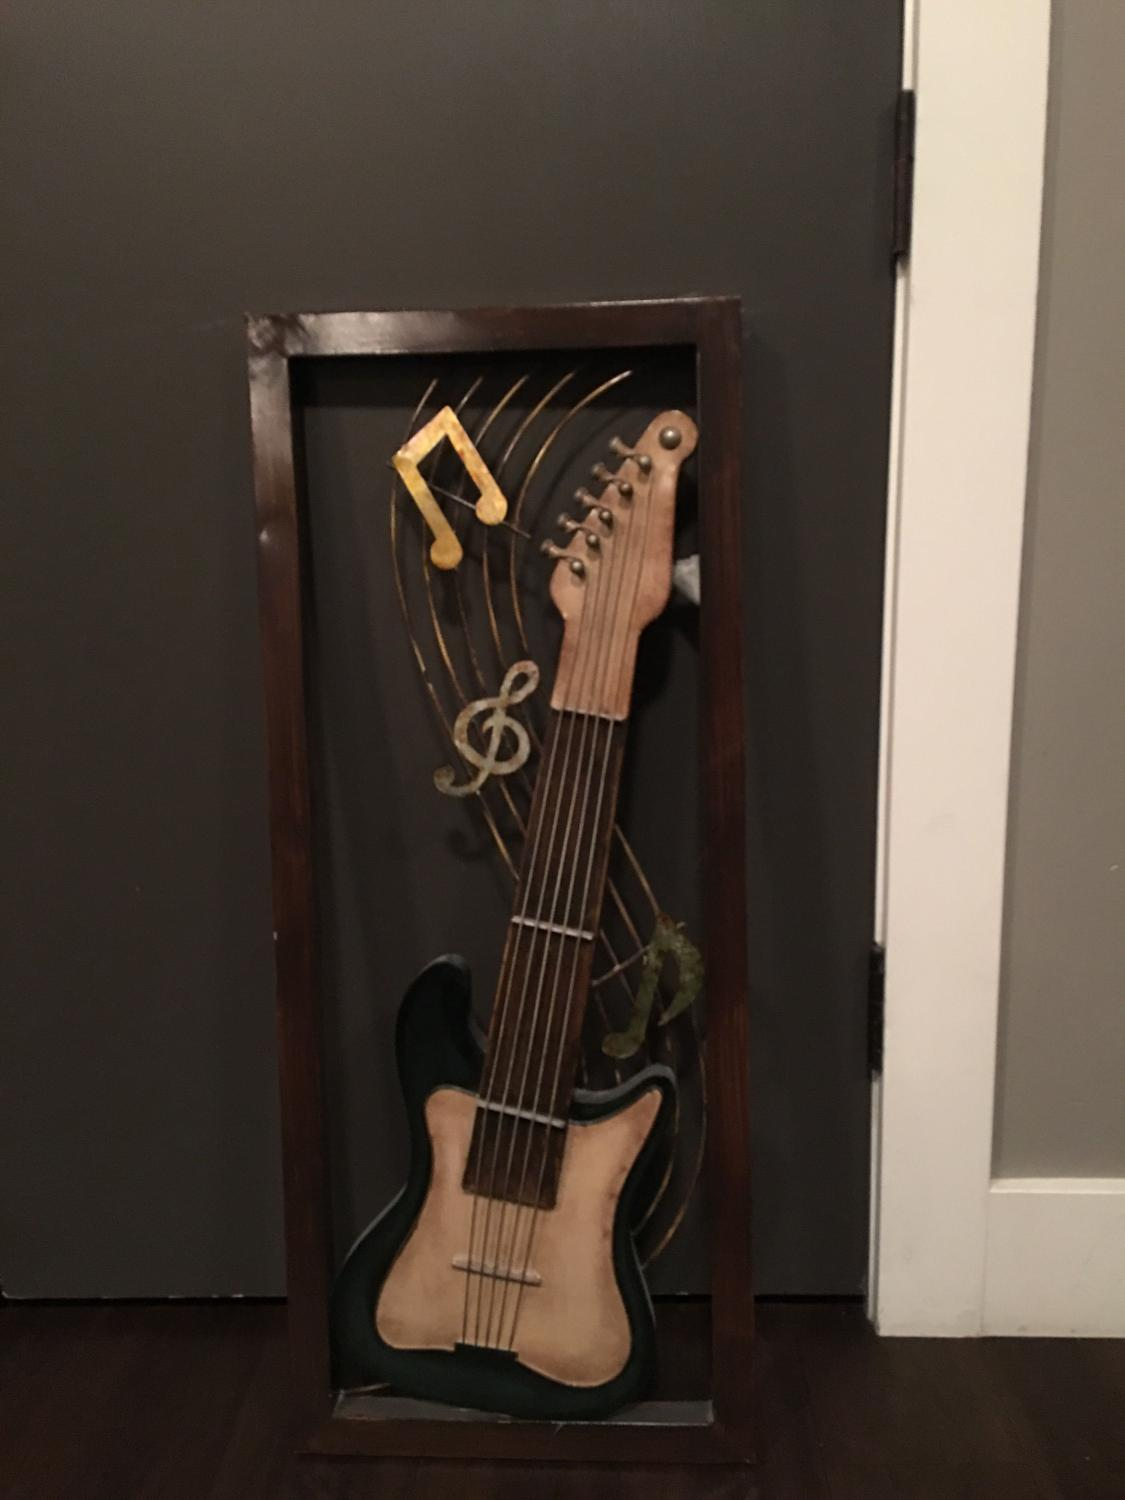 Best Guitar Wall Decor For Sale In Richmond British Columbia For 2017